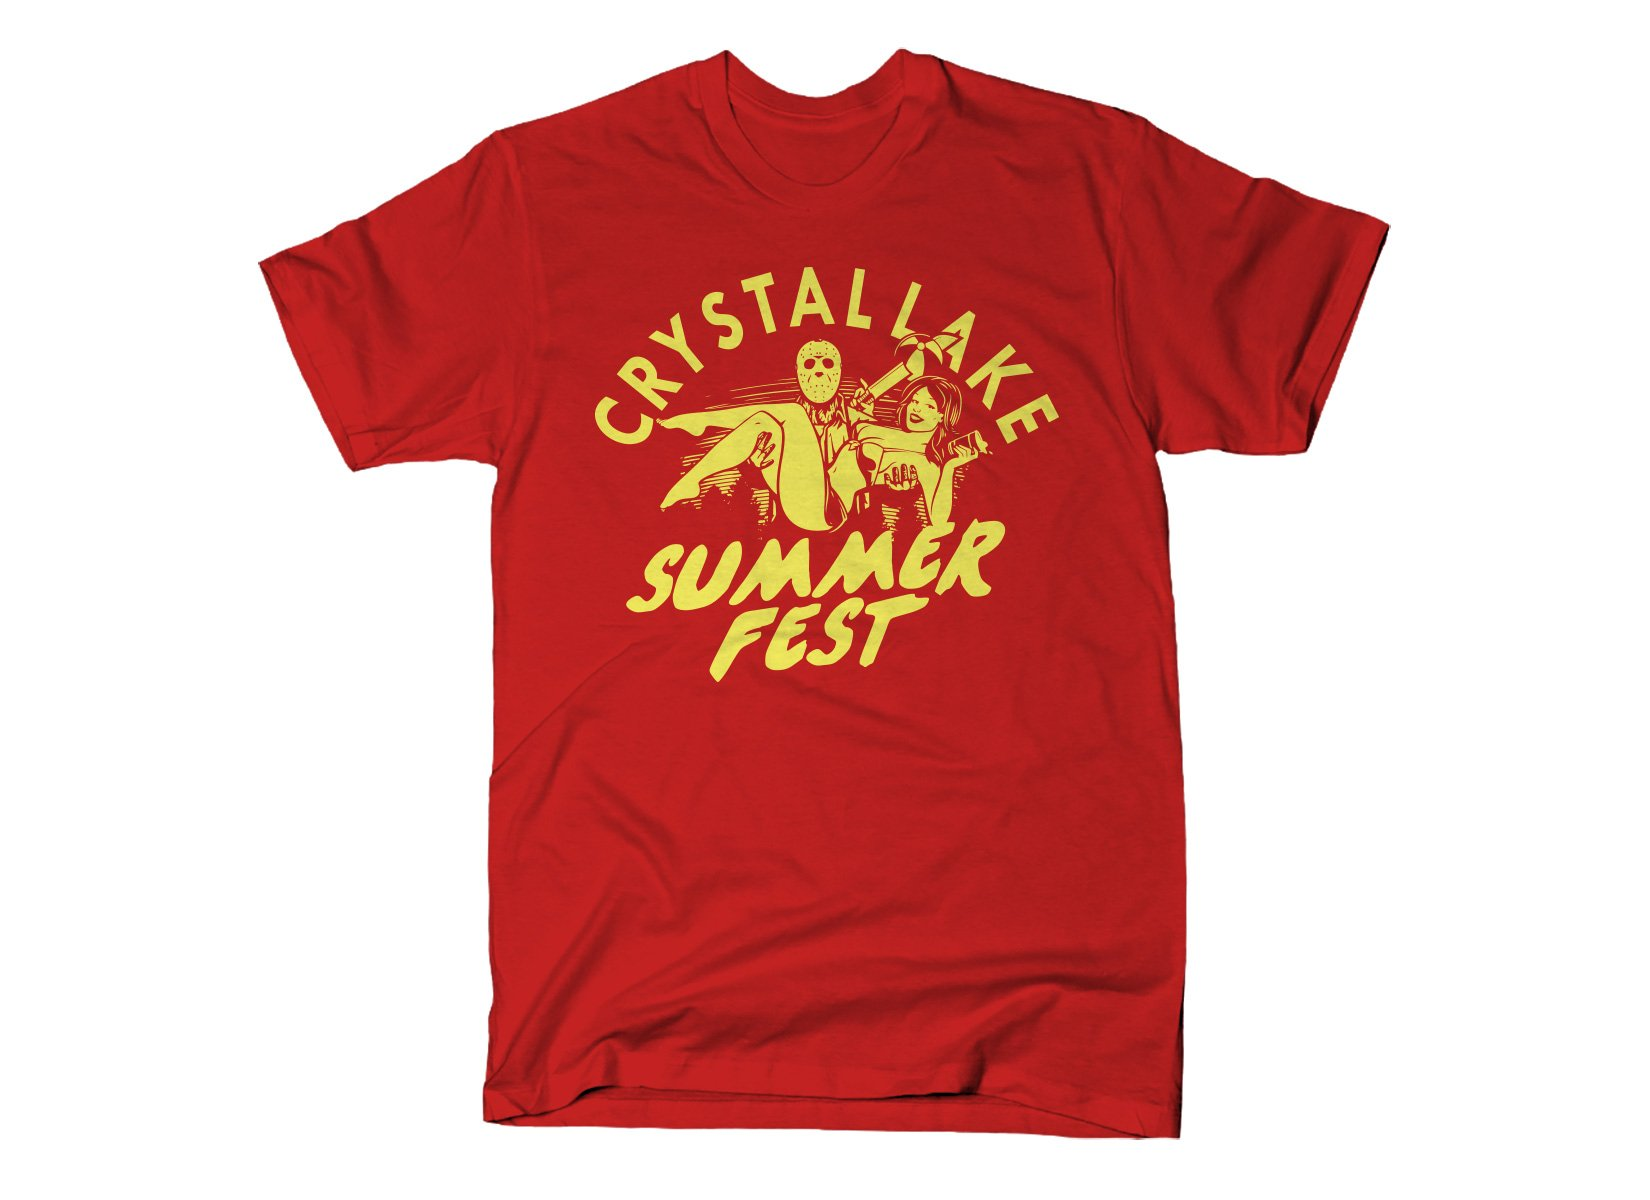 Crystal Lake Summer Fest on Mens T-Shirt